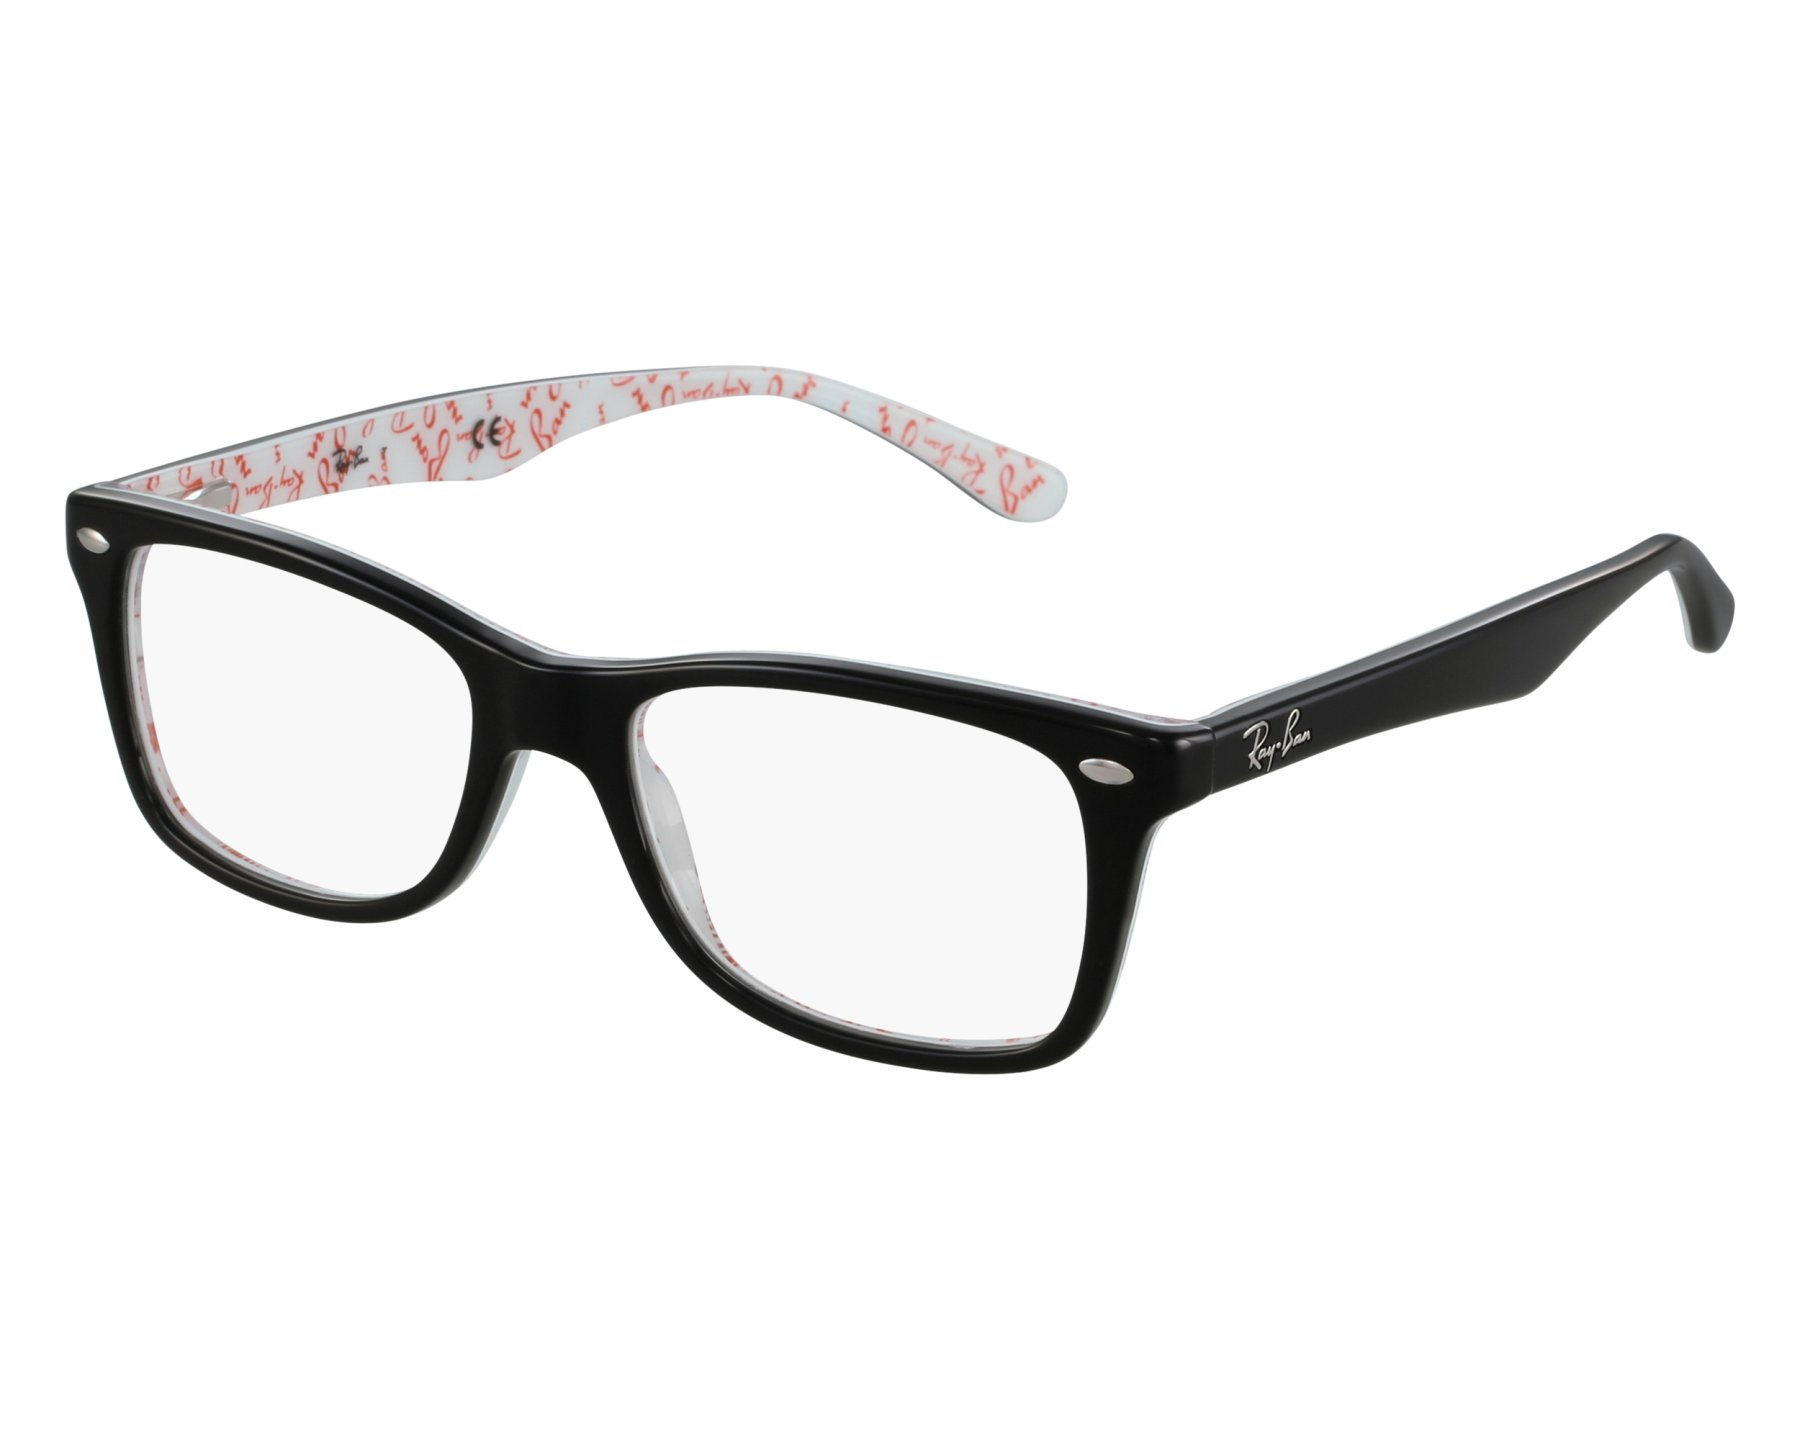 d4a2c7e5a6 eyeglasses Ray-Ban RX-5228 5014 50-17 Black front view